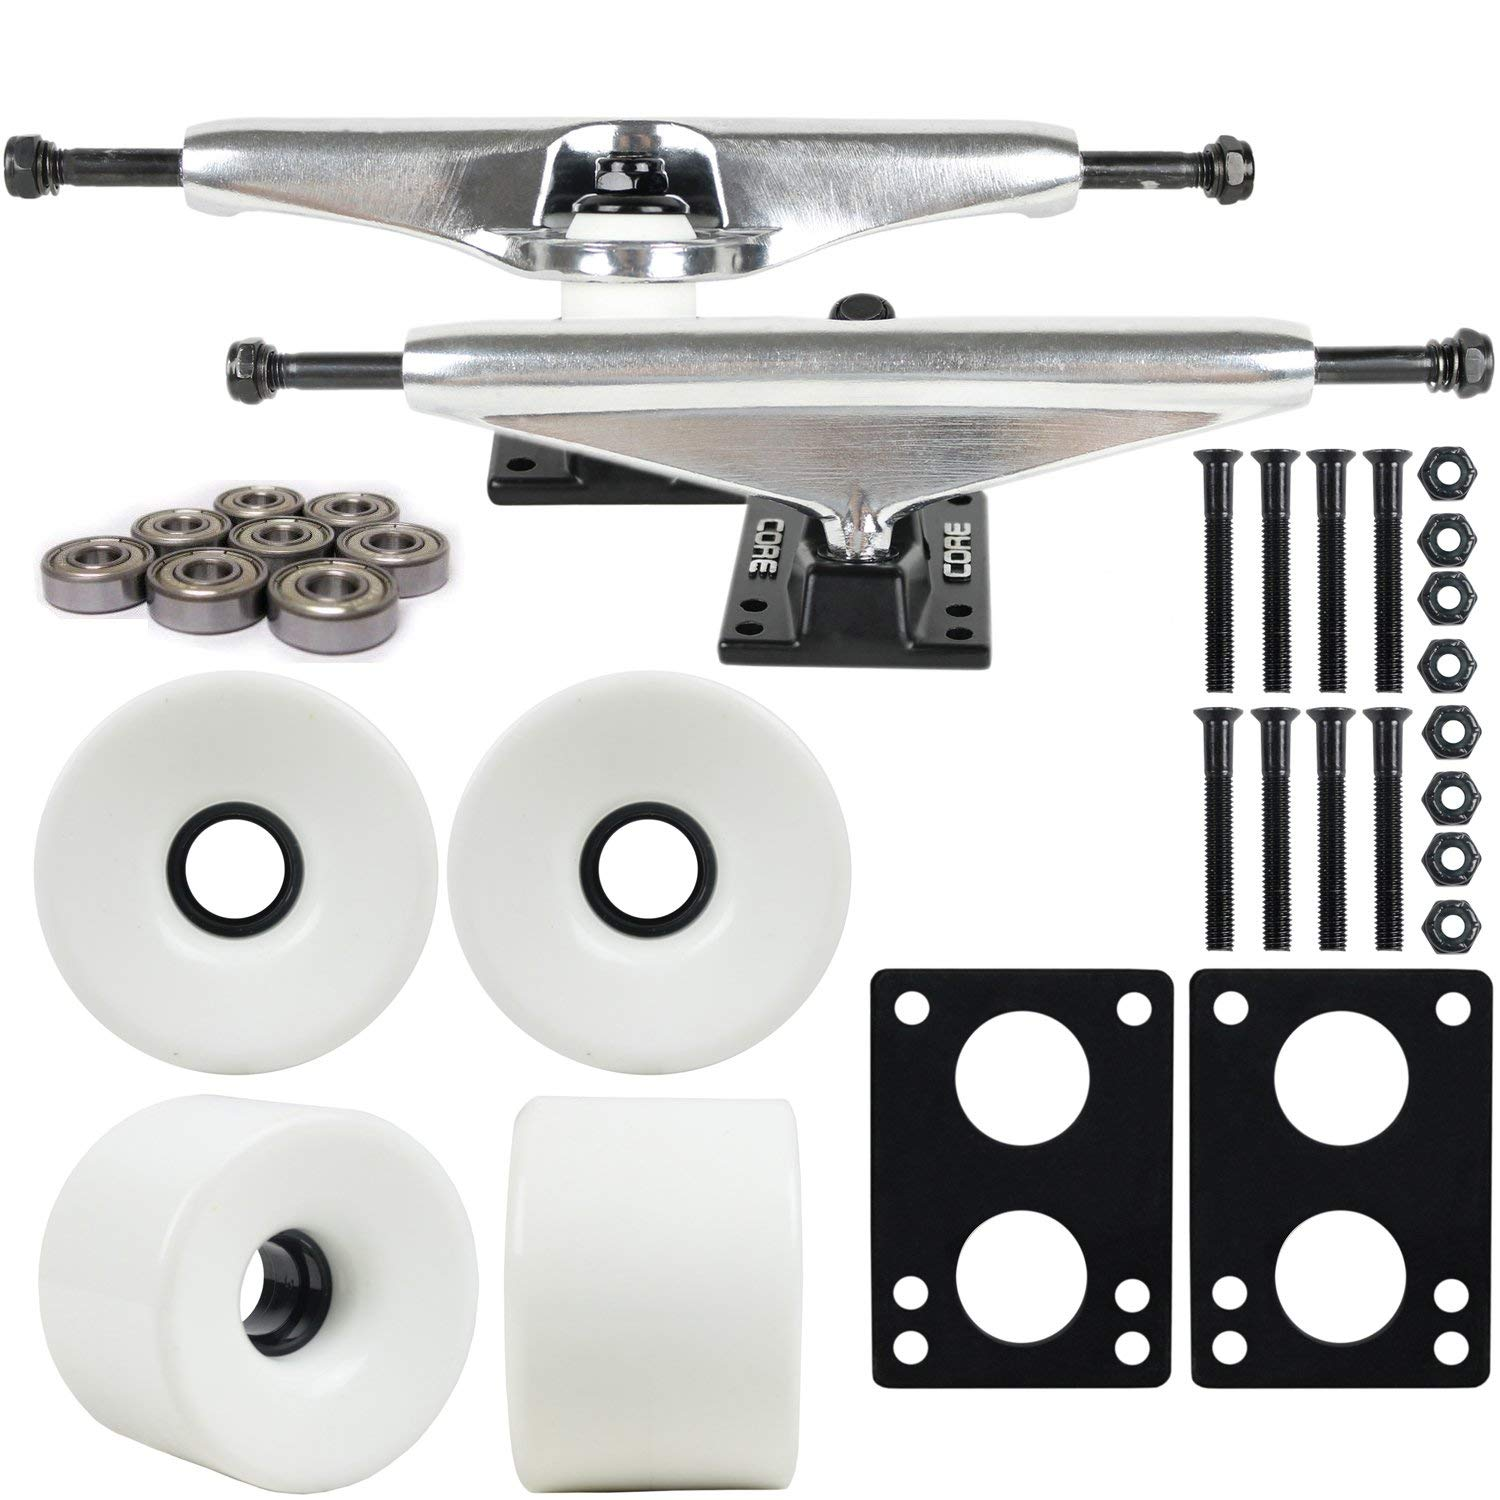 "Longboard Skateboard Trucks Combo Set 76mm Blank Wheels with Silver Trucks, Bearings, and Hardware Package (76mm White Wheels, 6.0 (9.63"") Silver Trucks)"